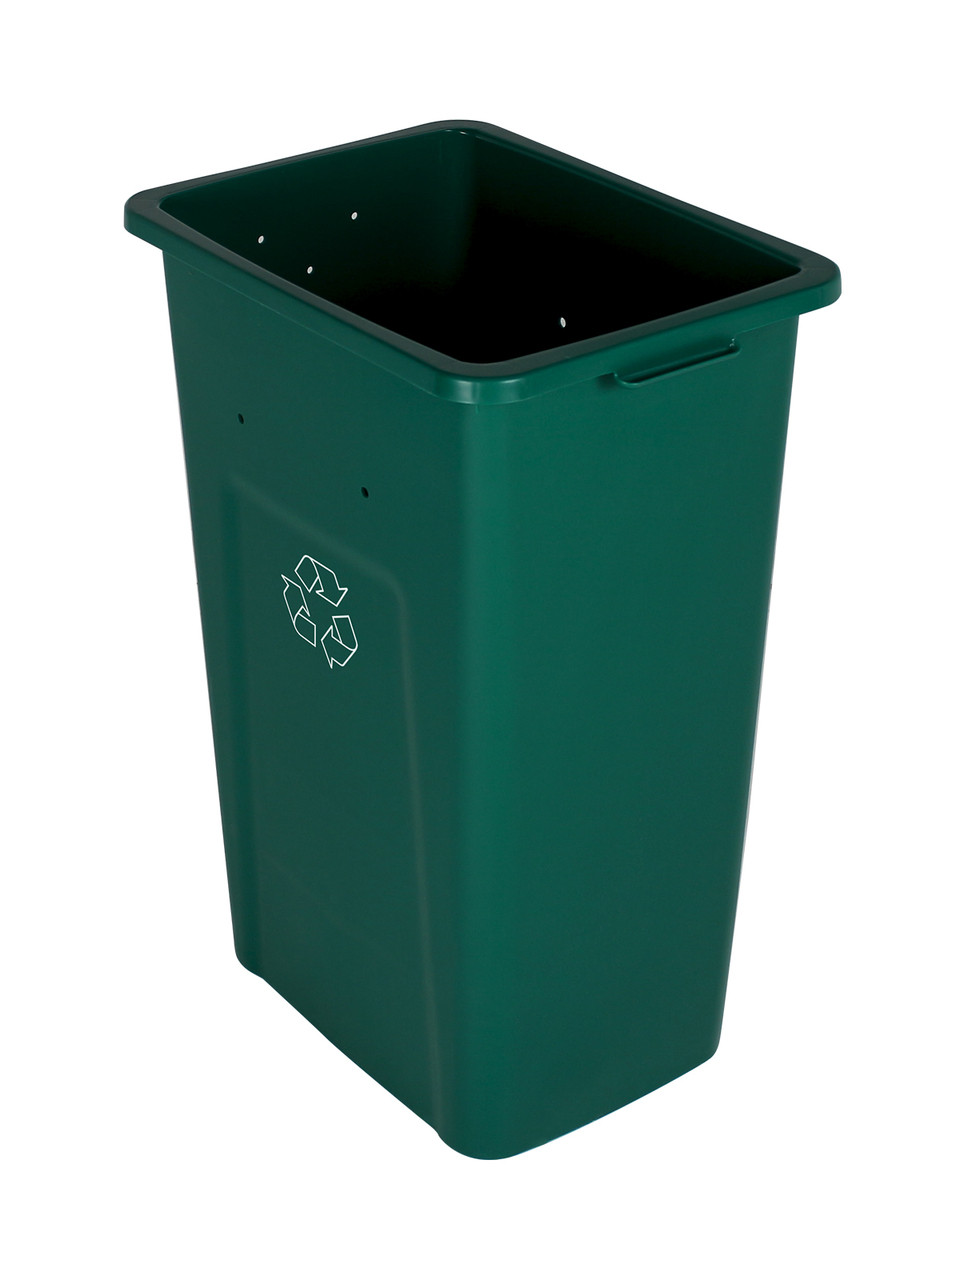 32 Gallon Extra Large Home & Office Recycling Bin Green